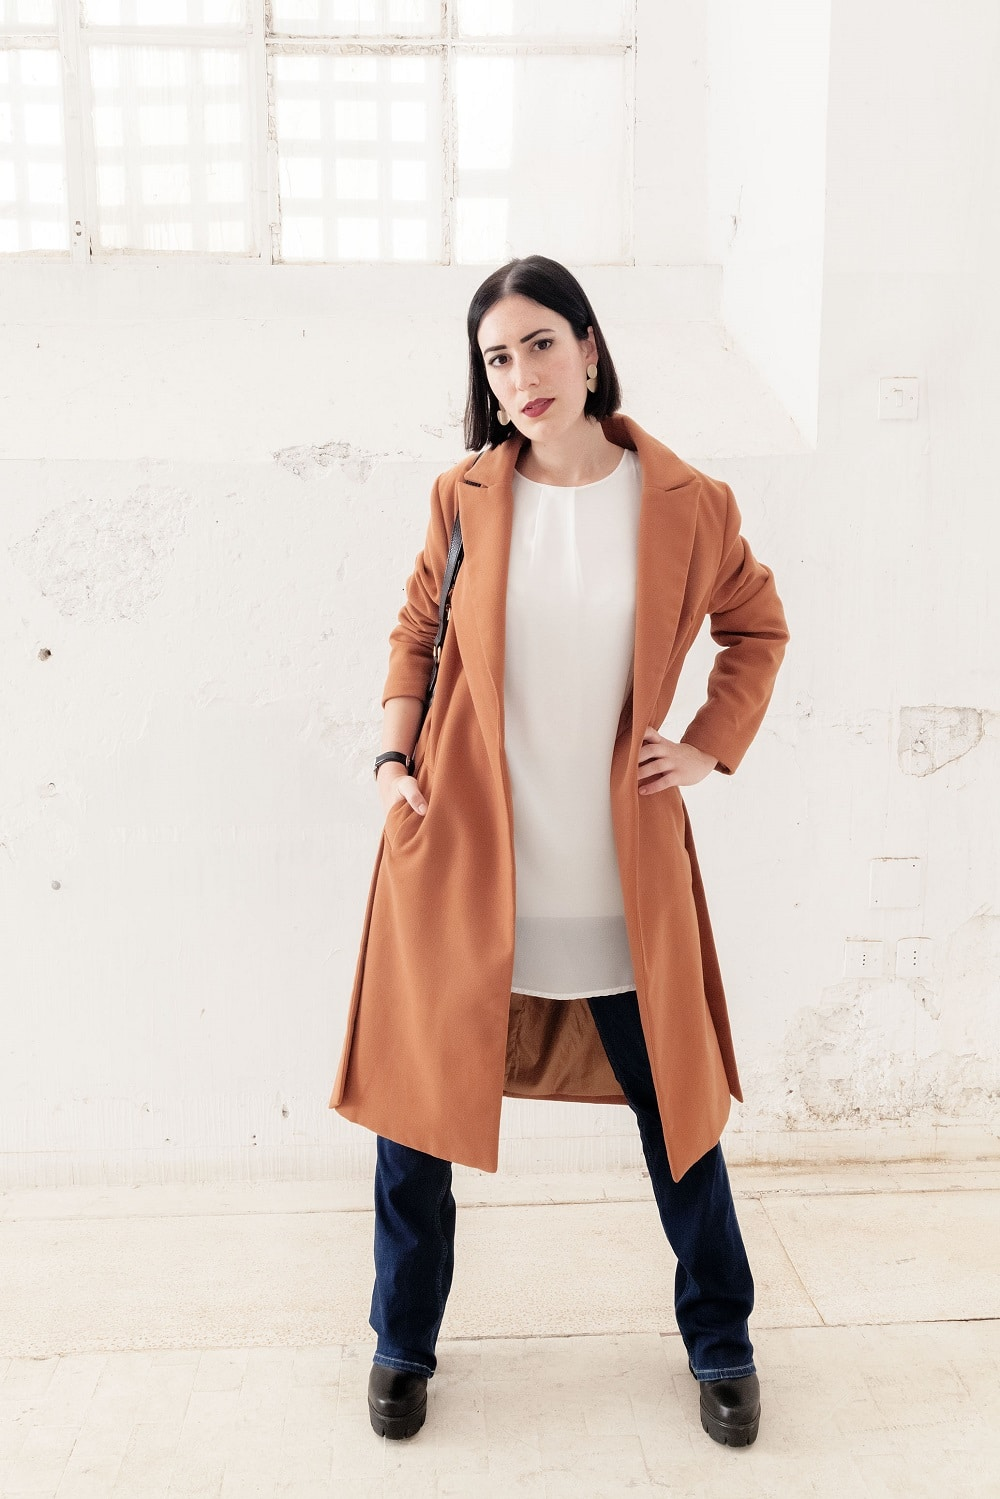 outfit-camel-coat-jeans-a-zampa-5